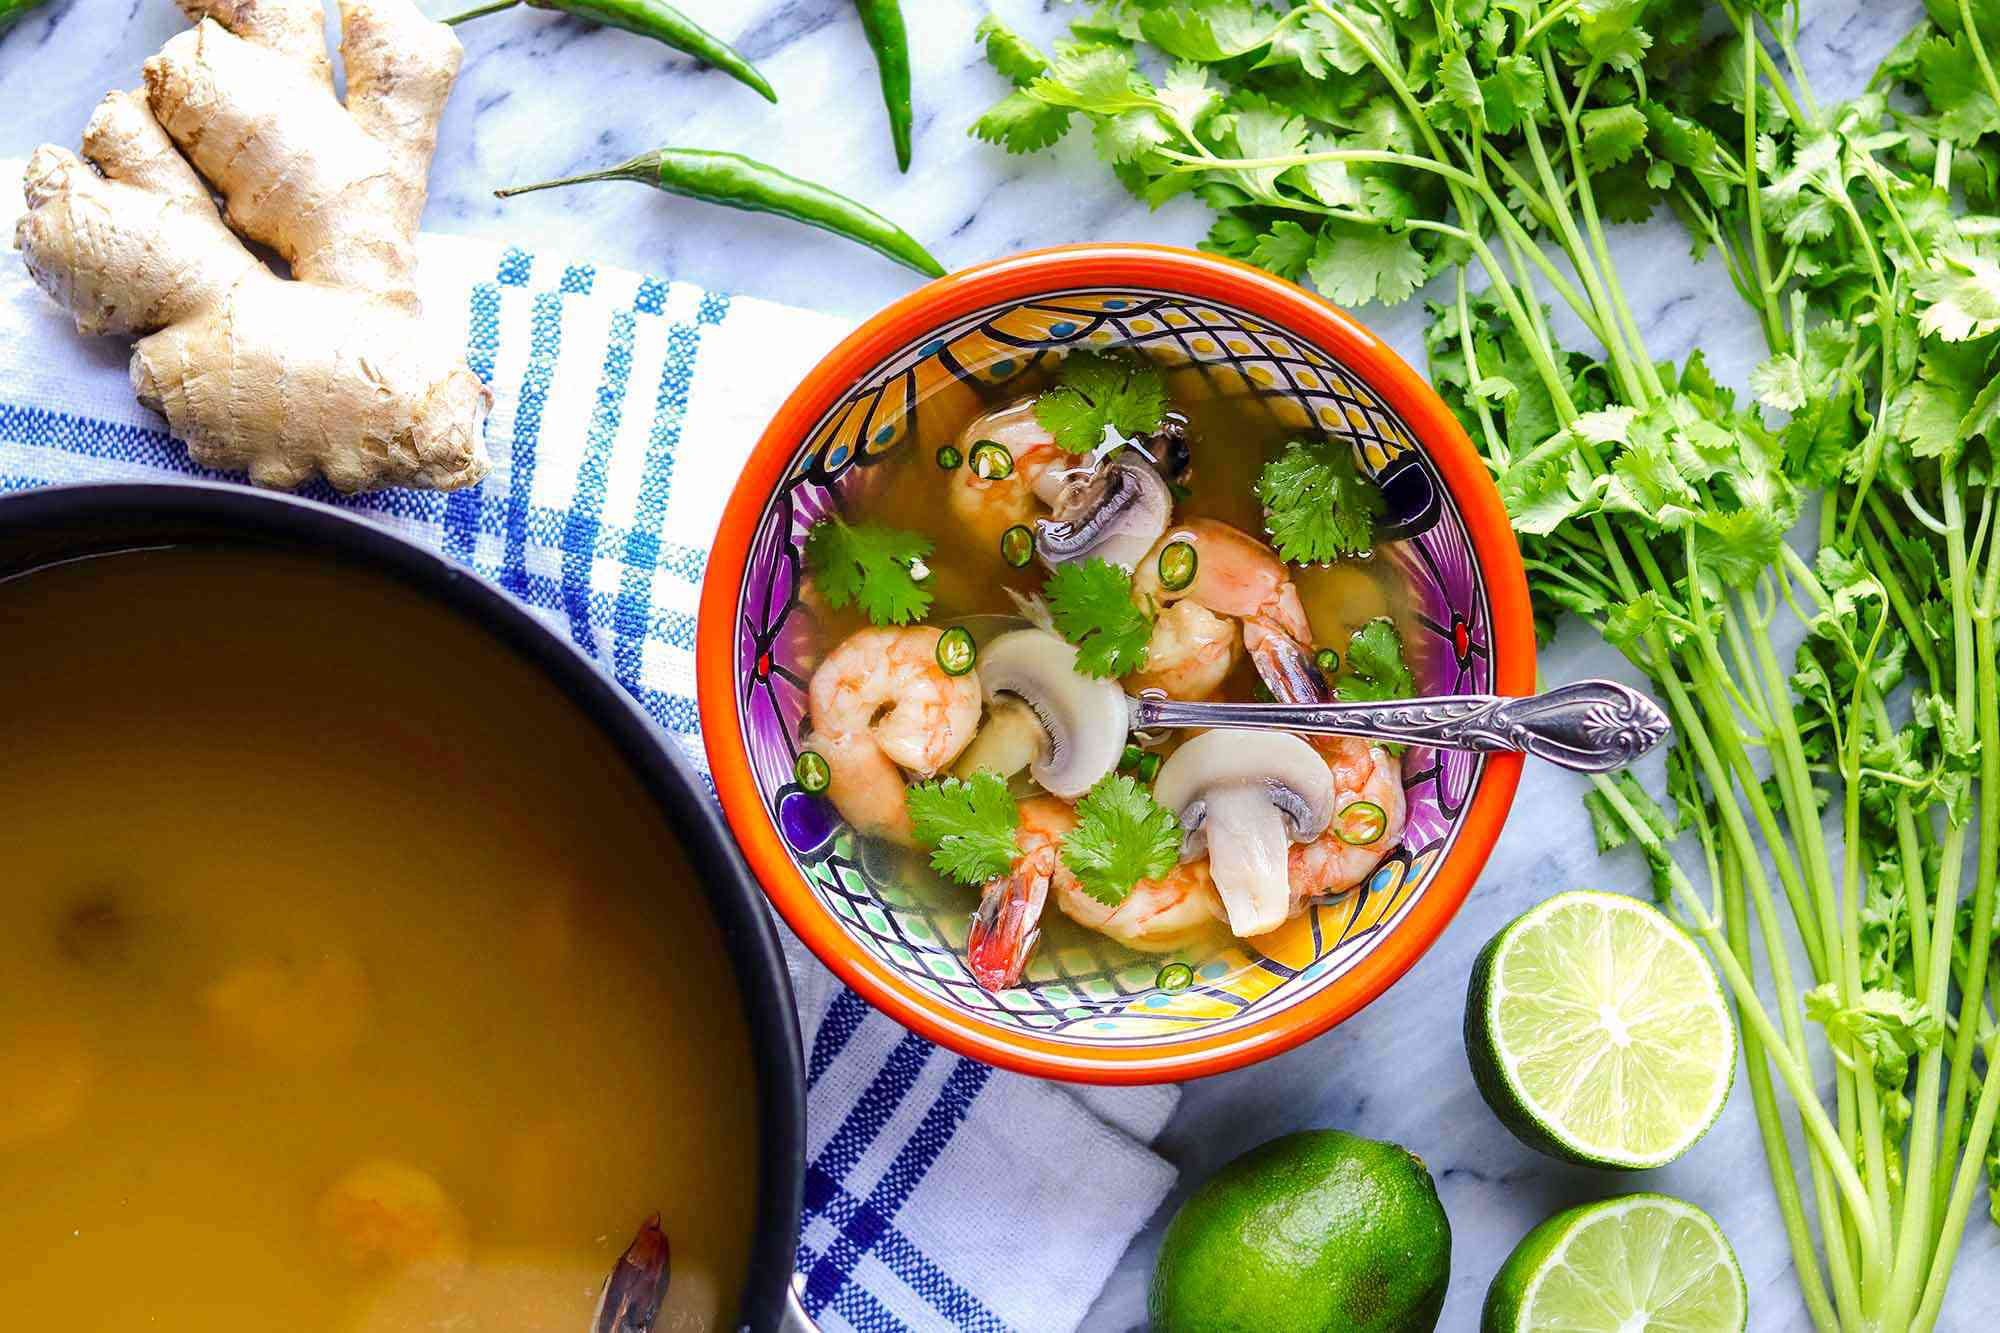 Thai soup with shrimp is in a brightly colored bowl with a silver spoon. A bunch of cilantro and halved limes are to the right of the bowl. To the left is a black pot of soup as well as a blue striped linen and a knob of ginger.